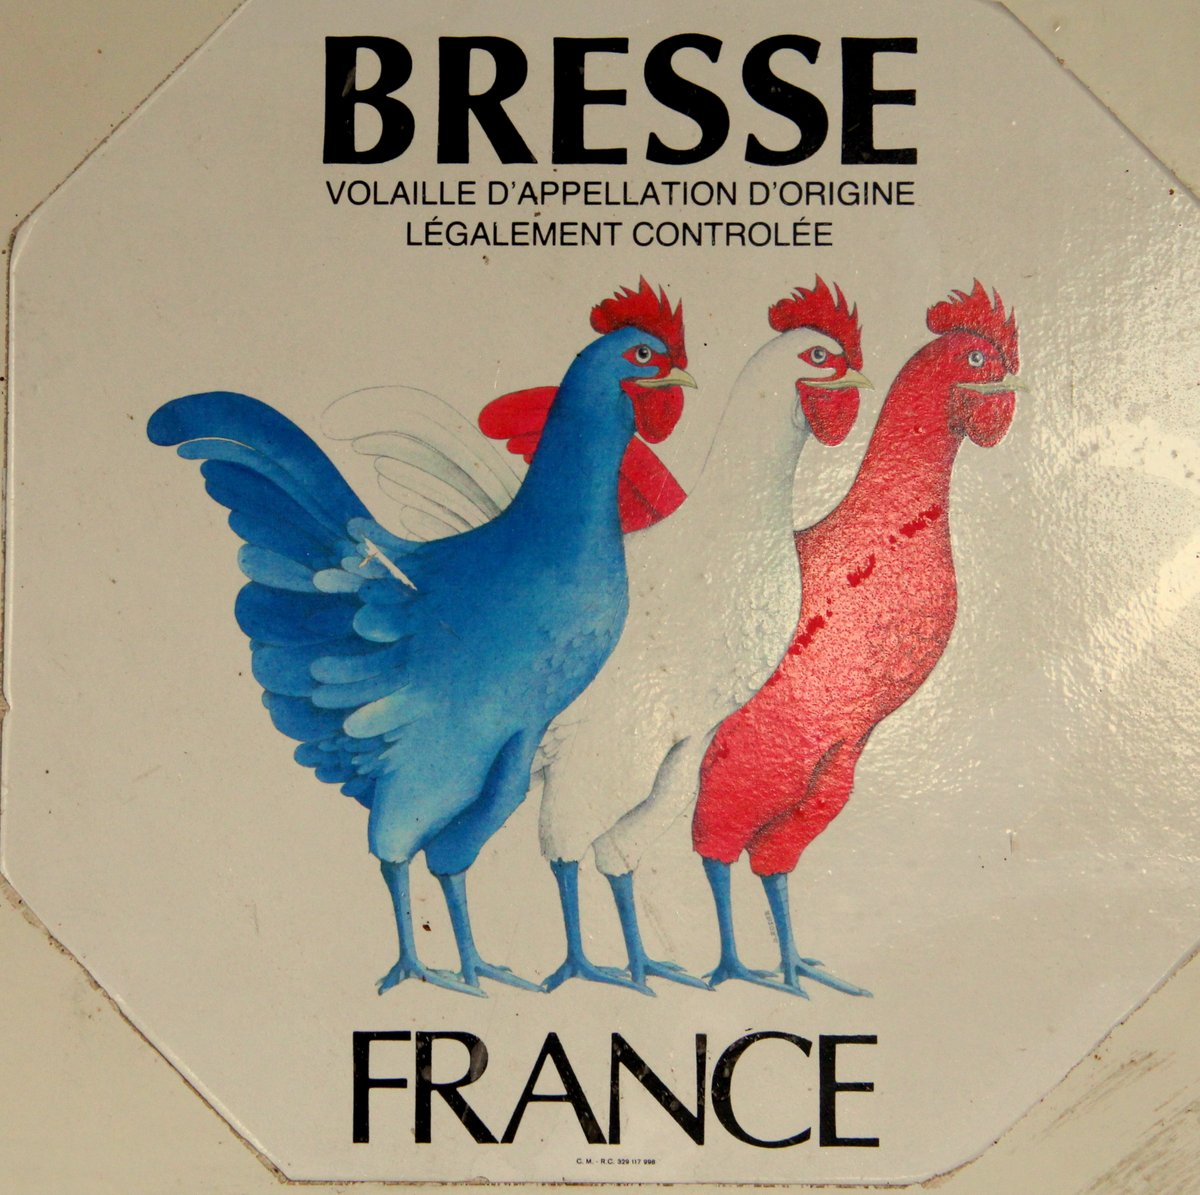 The house of the Bresse chicken